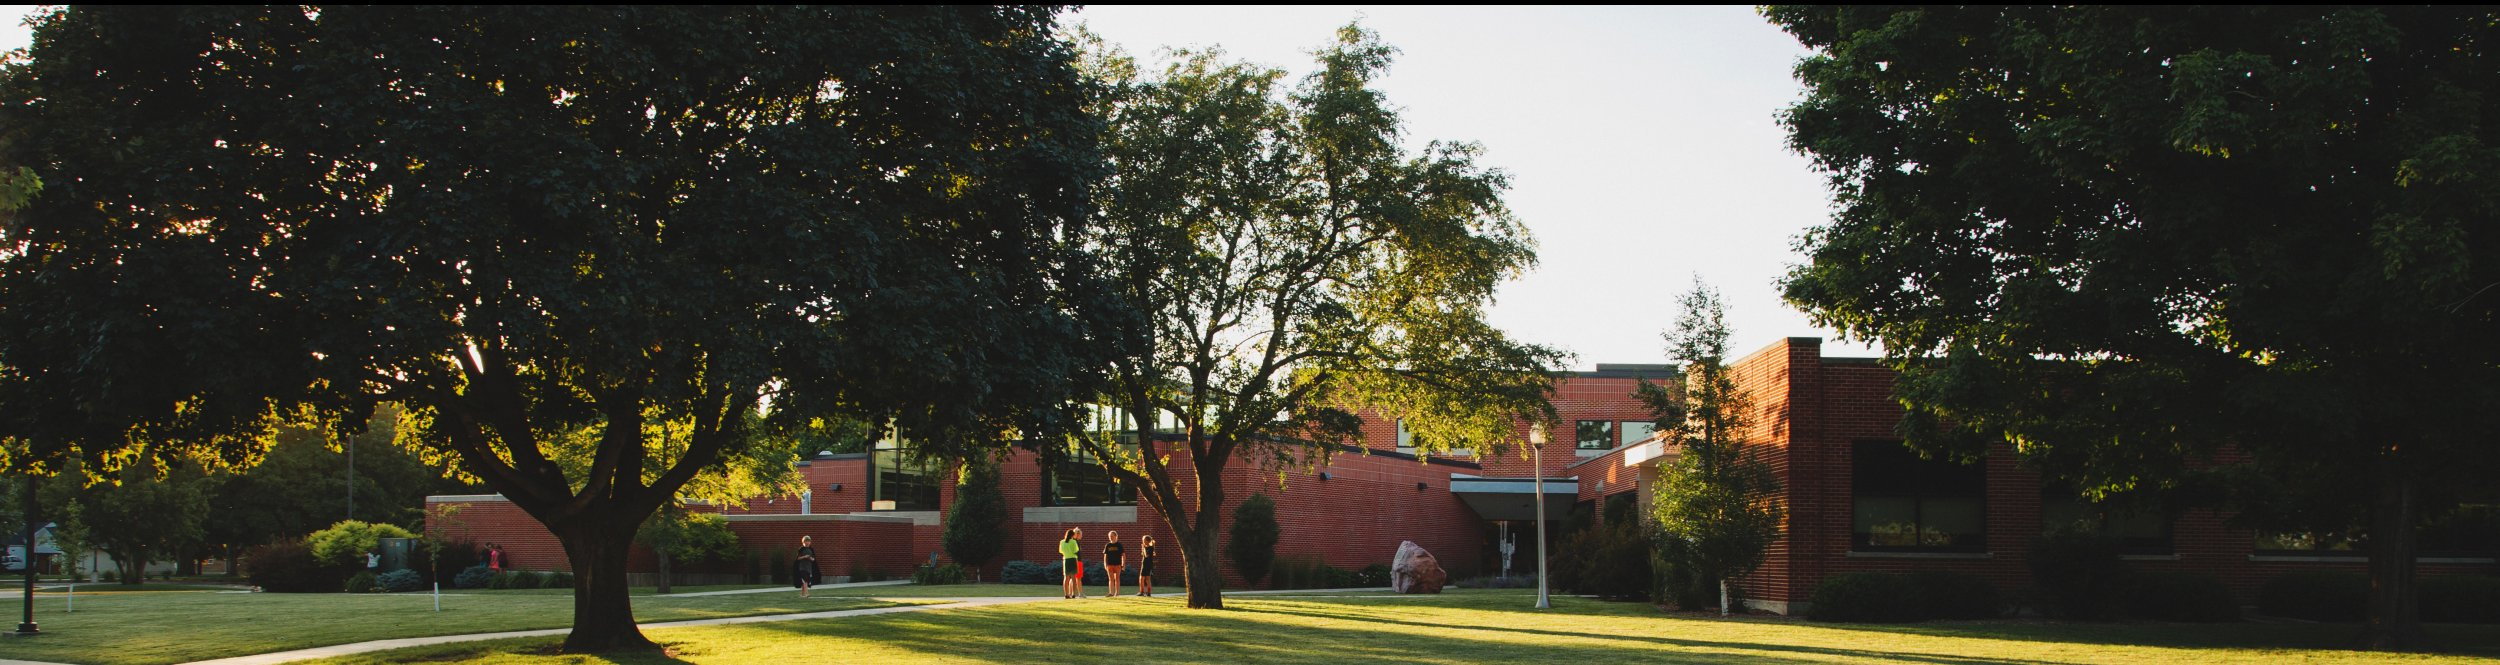 A large brick building with trees around it.